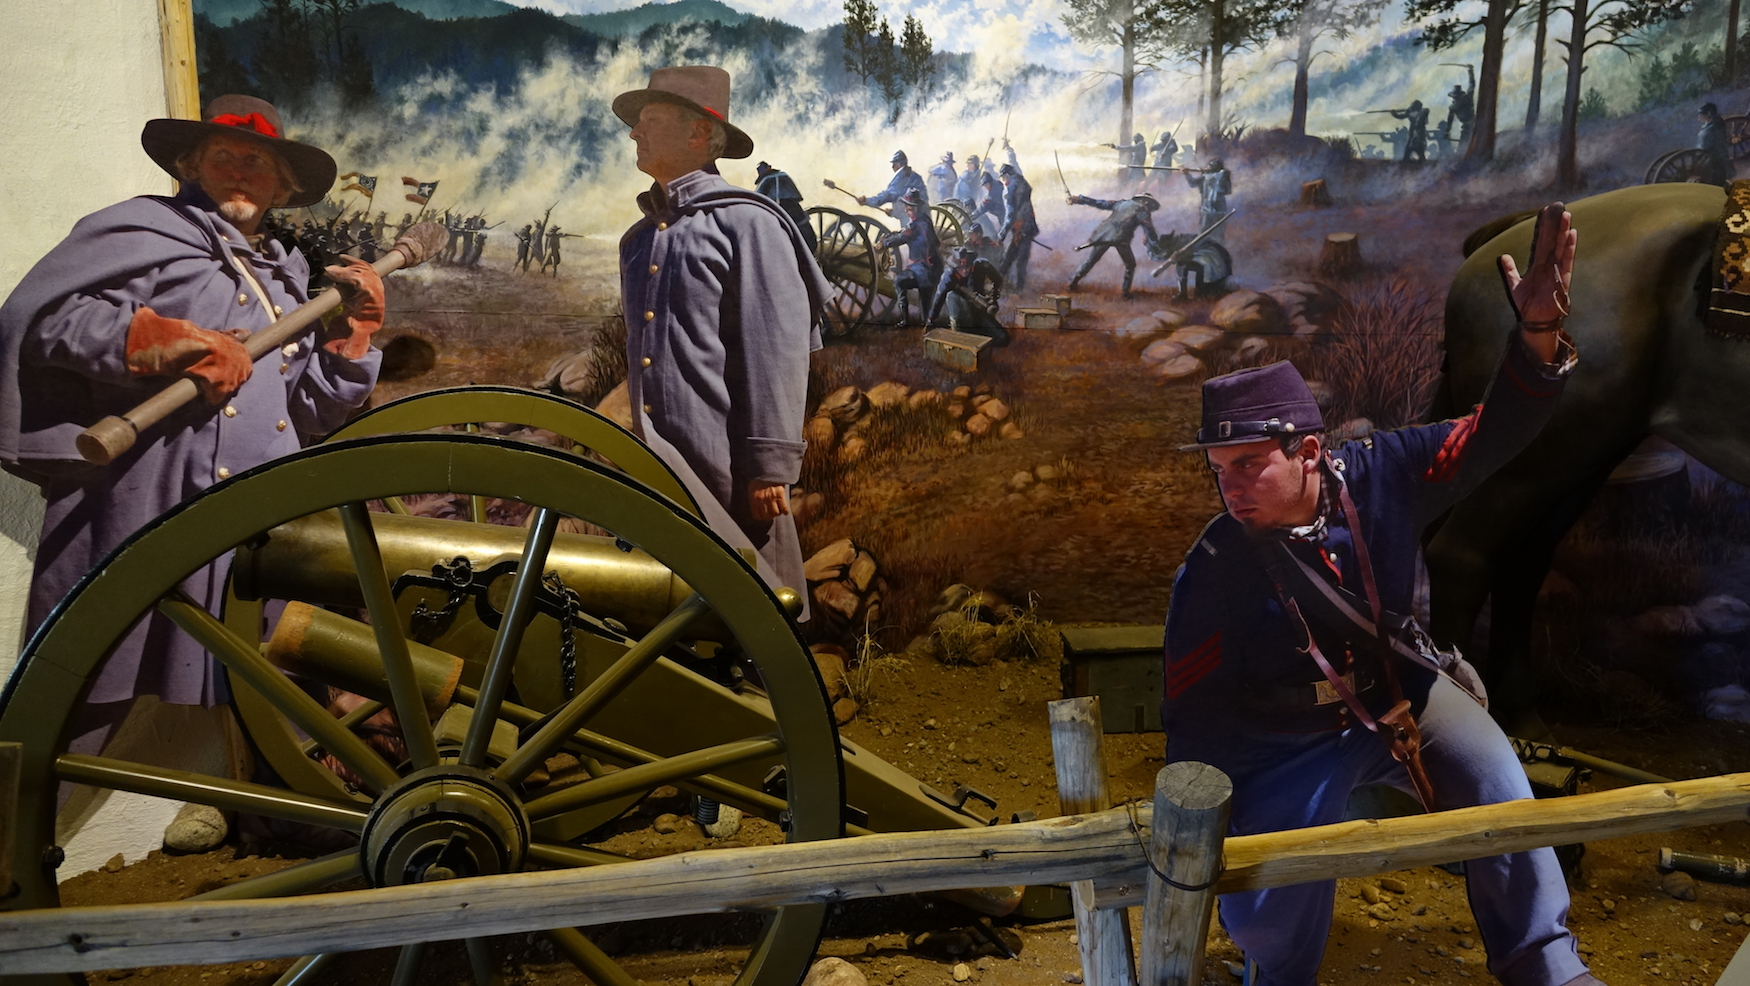 Exhibit at museum - soldiers in battle